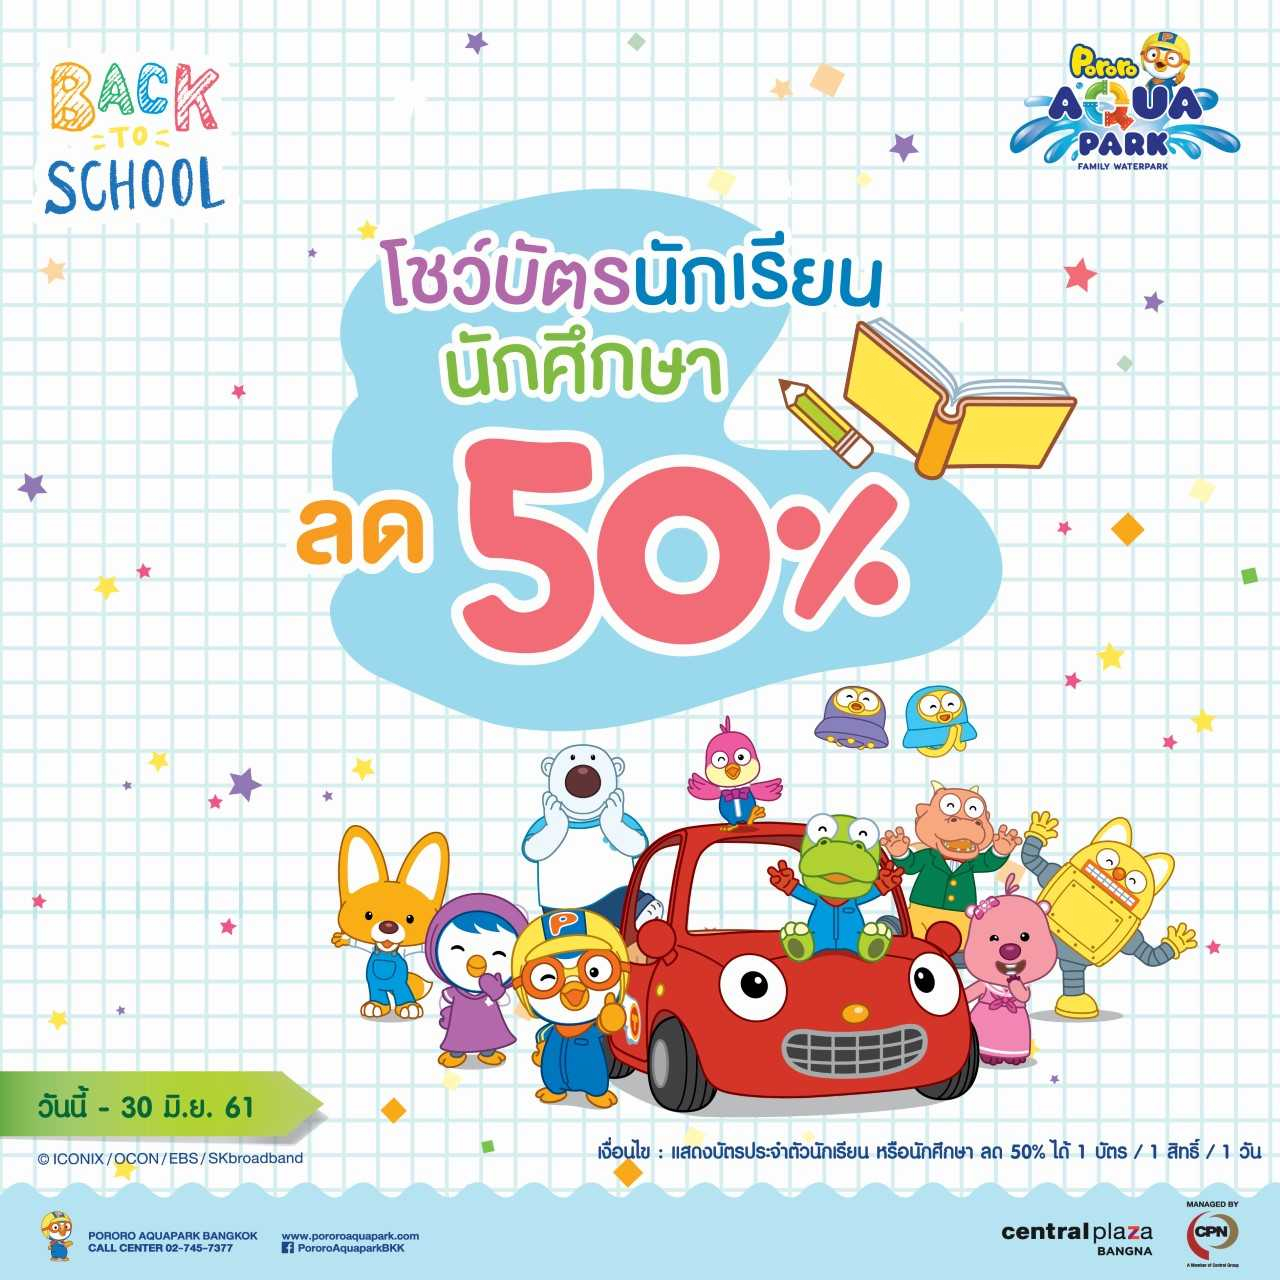 Eฺxtend promotion! Back to School Provide 50% off when customers show student card. | Pororo AquaPark Bangkok